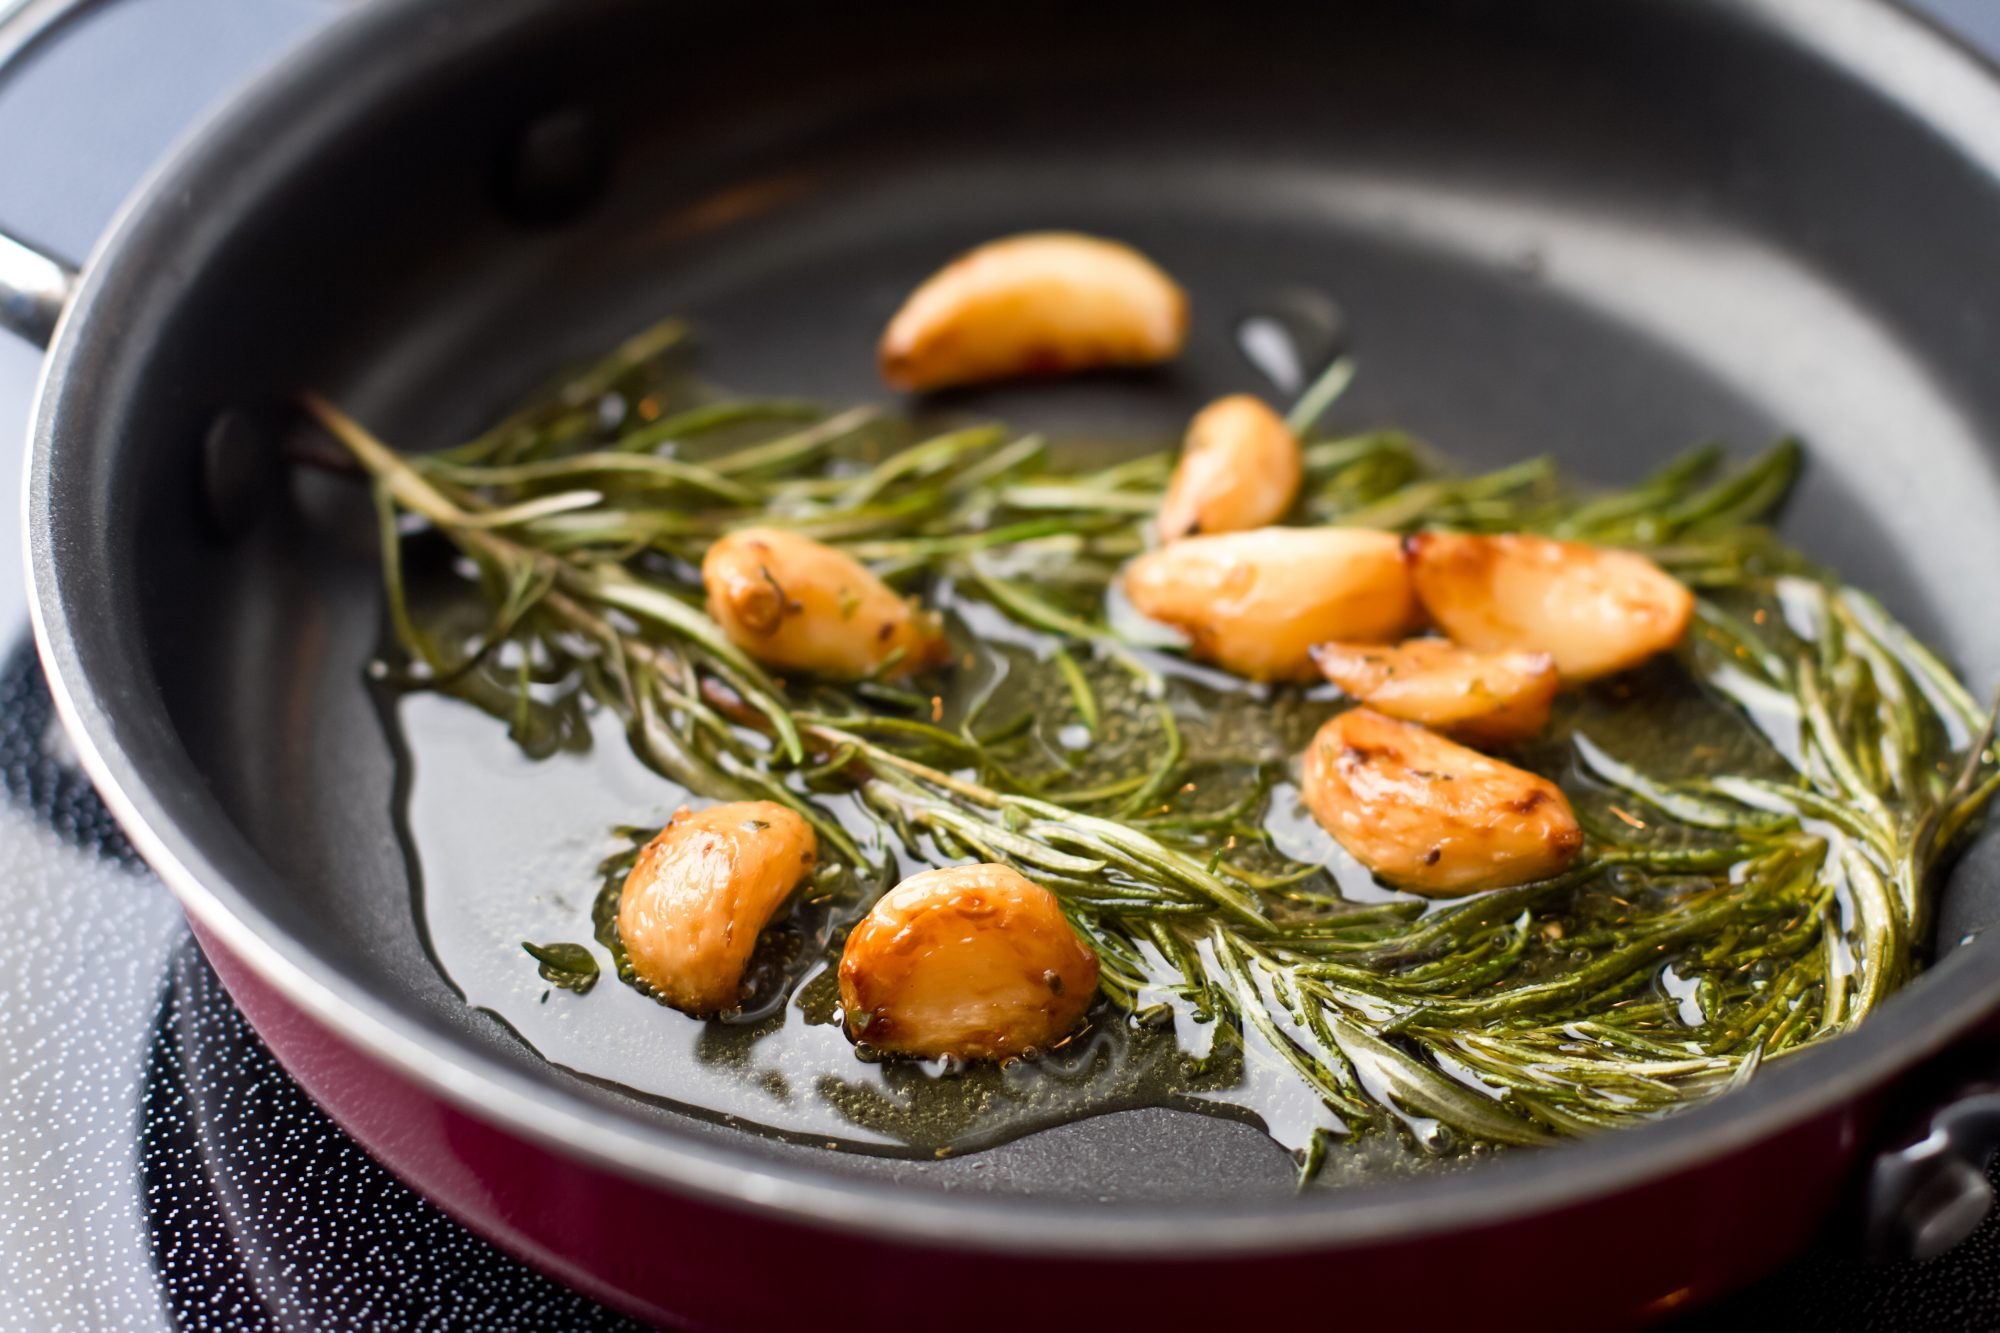 The Healthiest (and Least Healthy) Cooking Oils